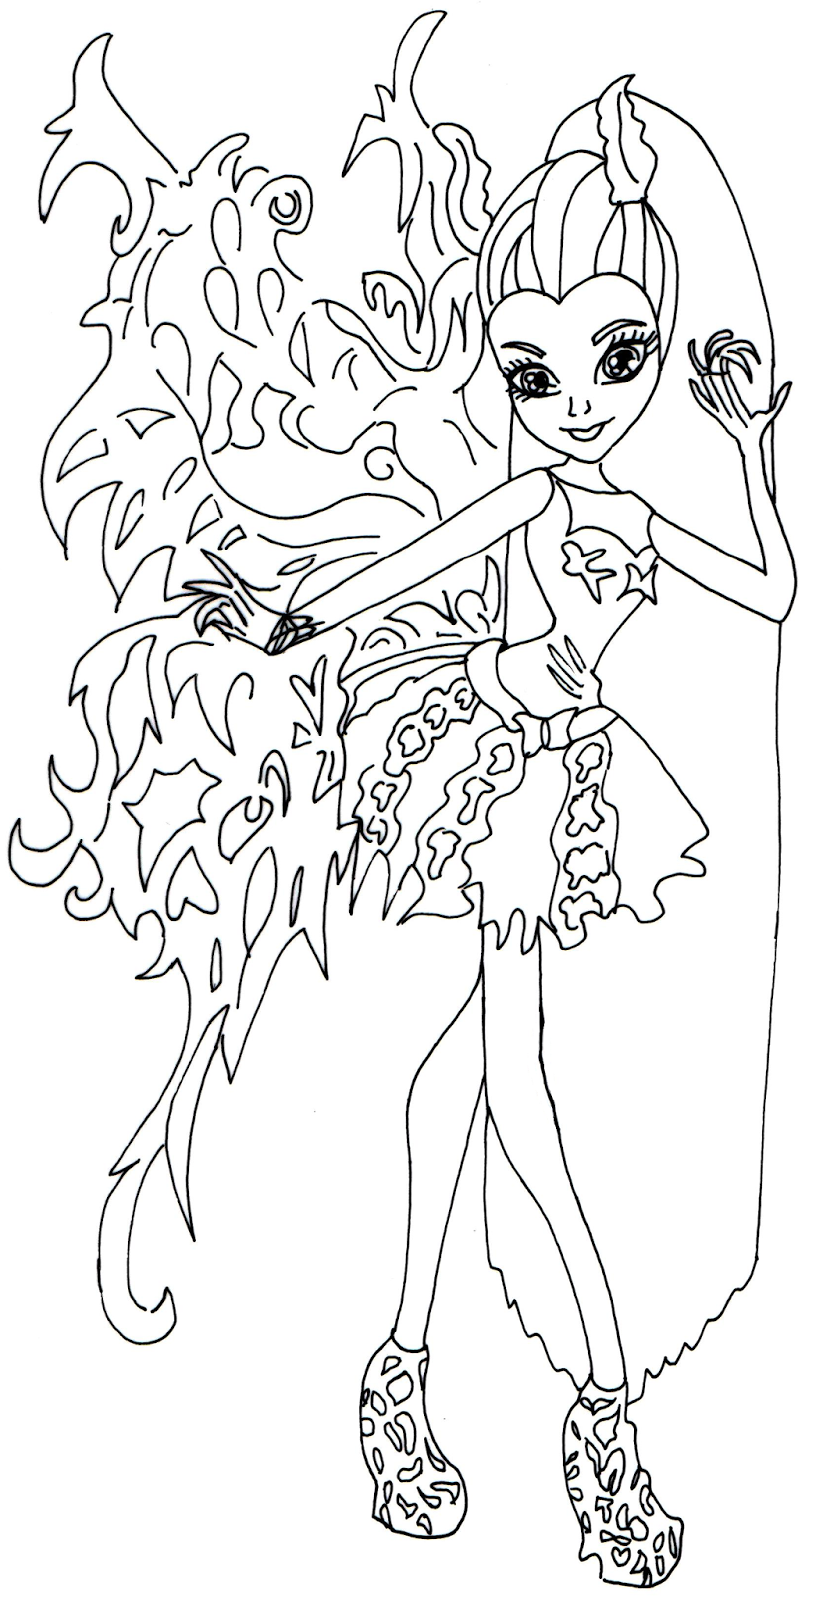 Free printable monster high coloring pages june 2014 for Monster high color pages free